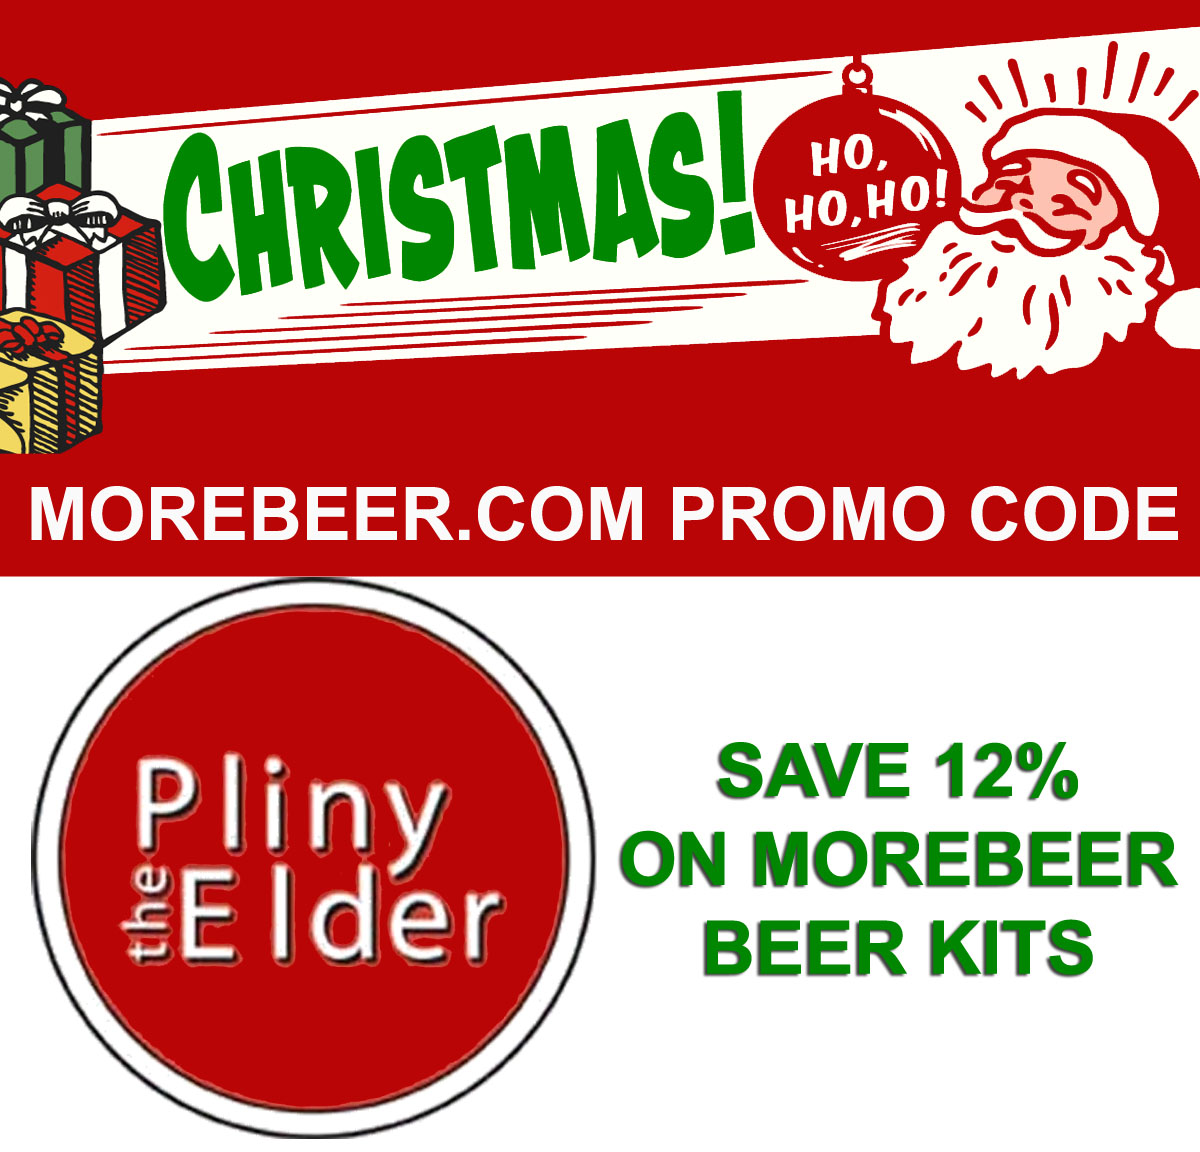 Home Brewer Promo Code for Save 12% On All MoreMore.com Home Brewing Beer Recipe Kits Coupon Code